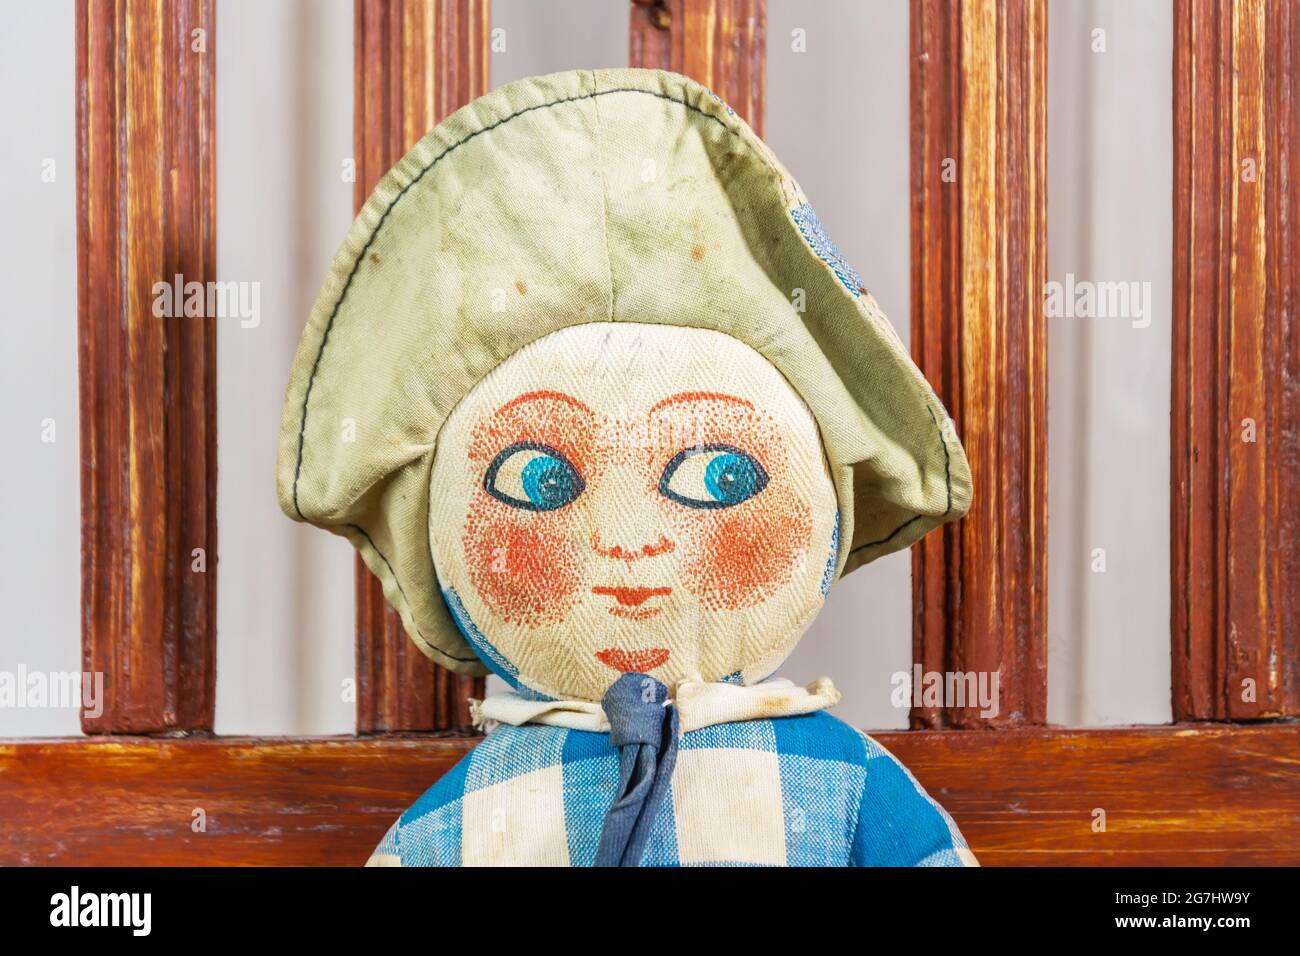 Cloth canvas doll with a painted face Stock Photo